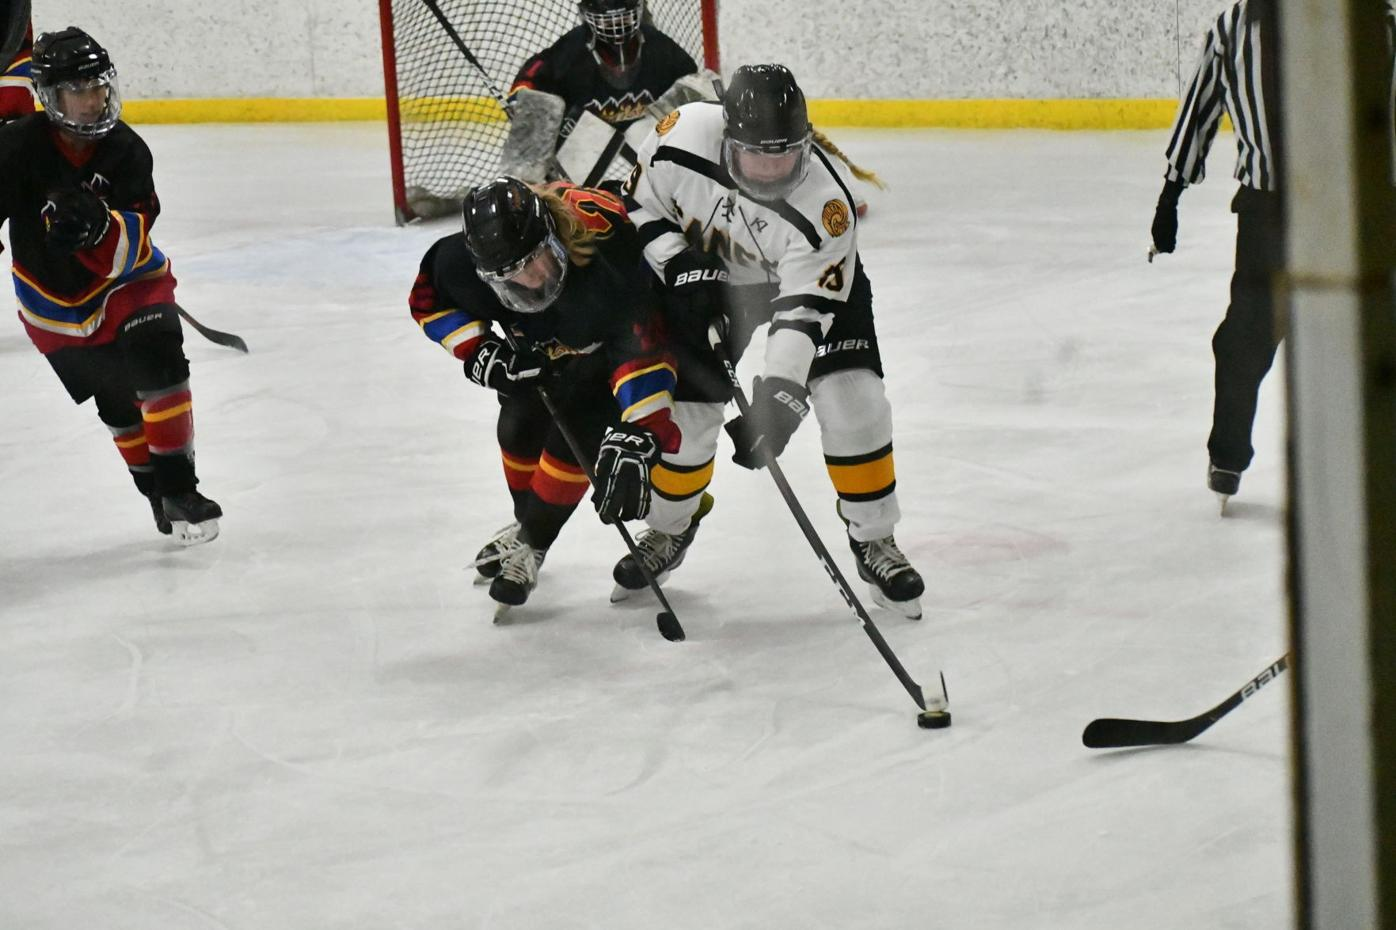 Fighting for the puck